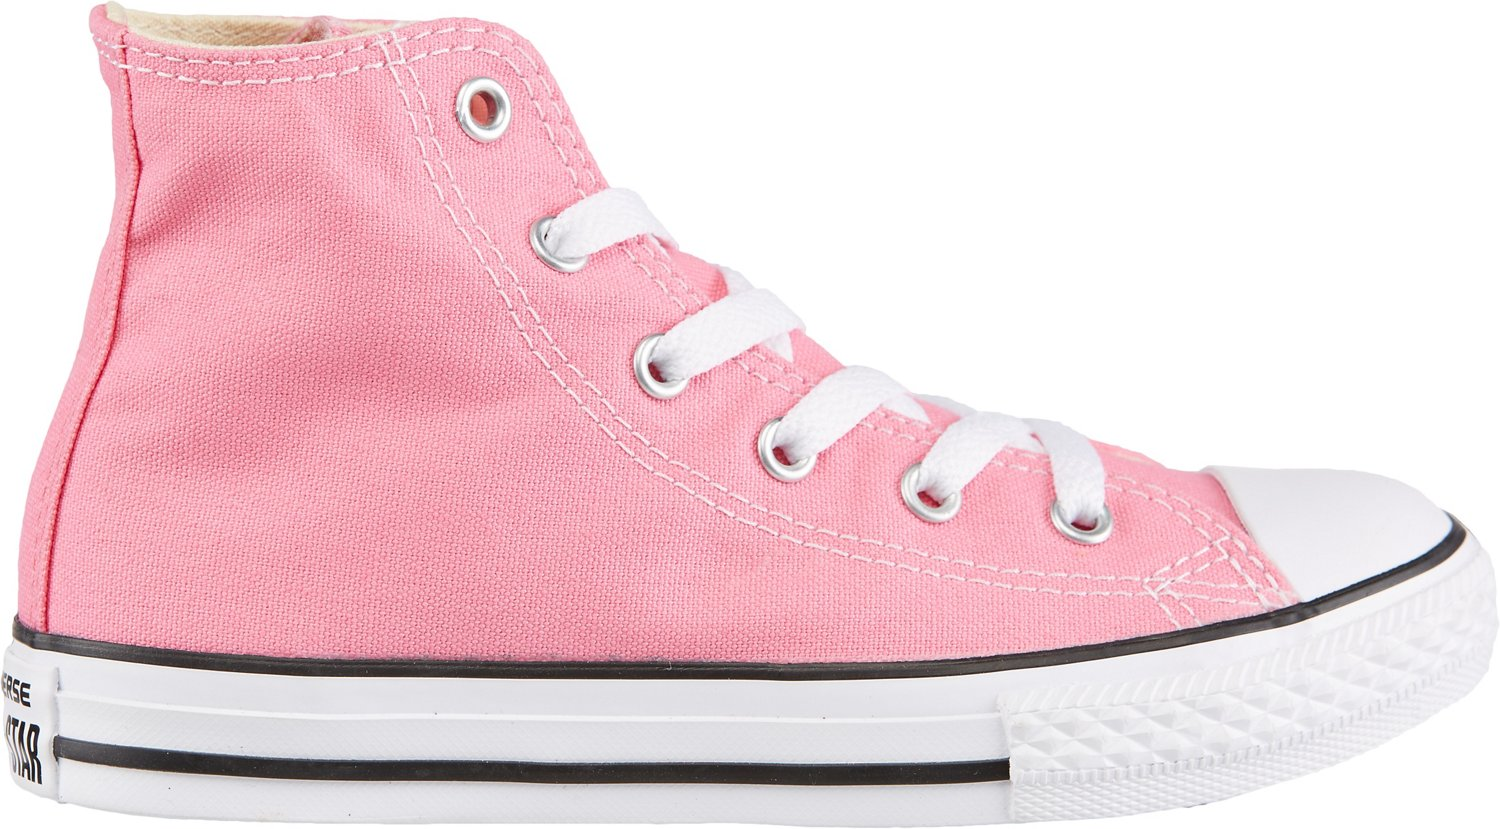 Converse Toddler Girls' Chuck Taylor All Star Shoes - view number 3